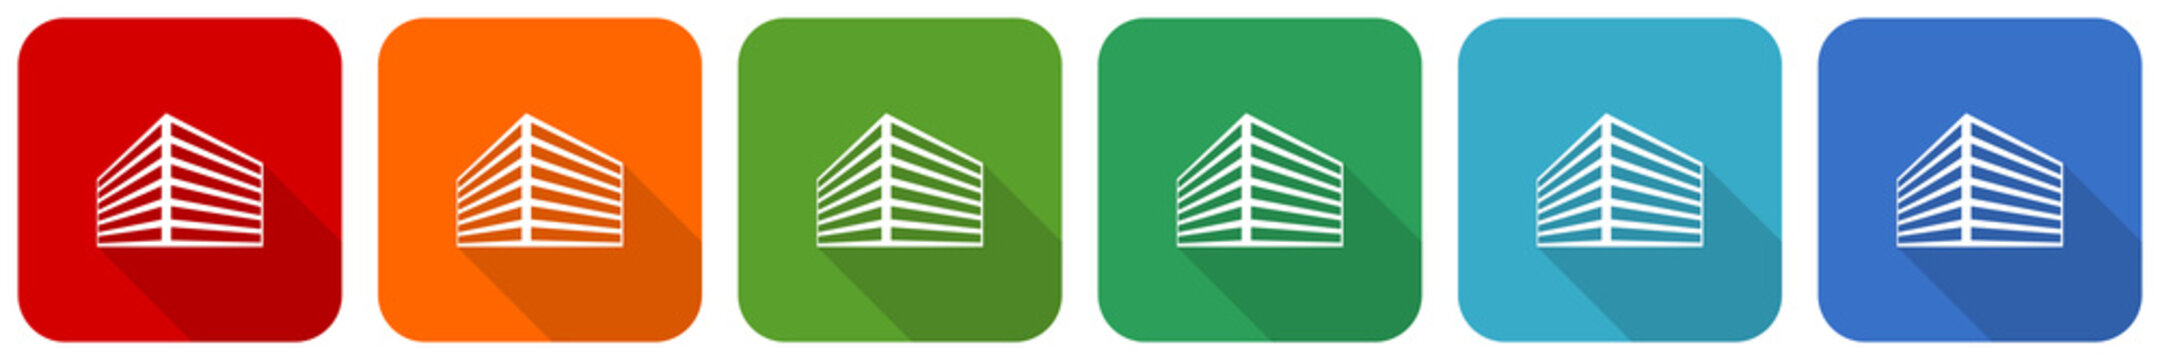 Modern design office building icon set, flat design vector illustration in 6 colors options for webdesign and mobile applications